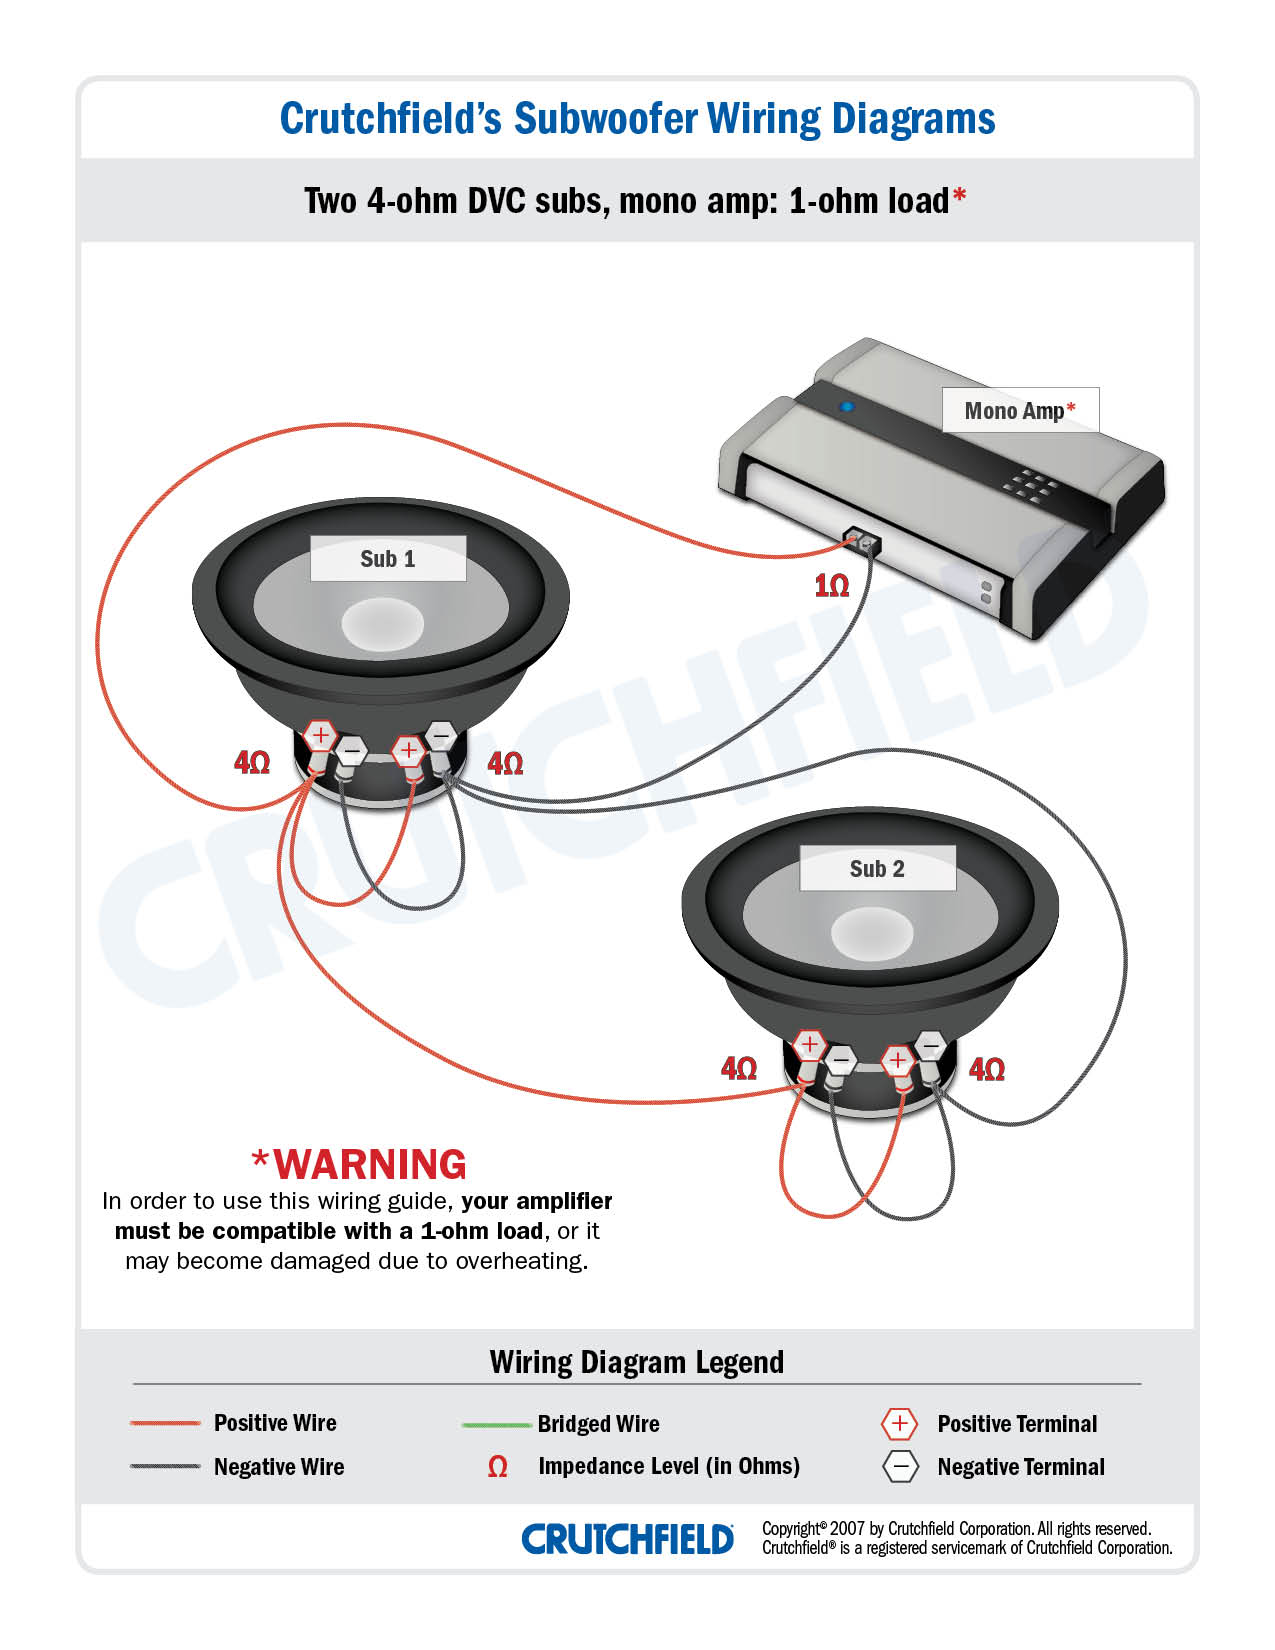 2 channel wiring diagram images guide how to connect a 2 channel have a rockford fosgate punch p500 4 marine amplifier that i would